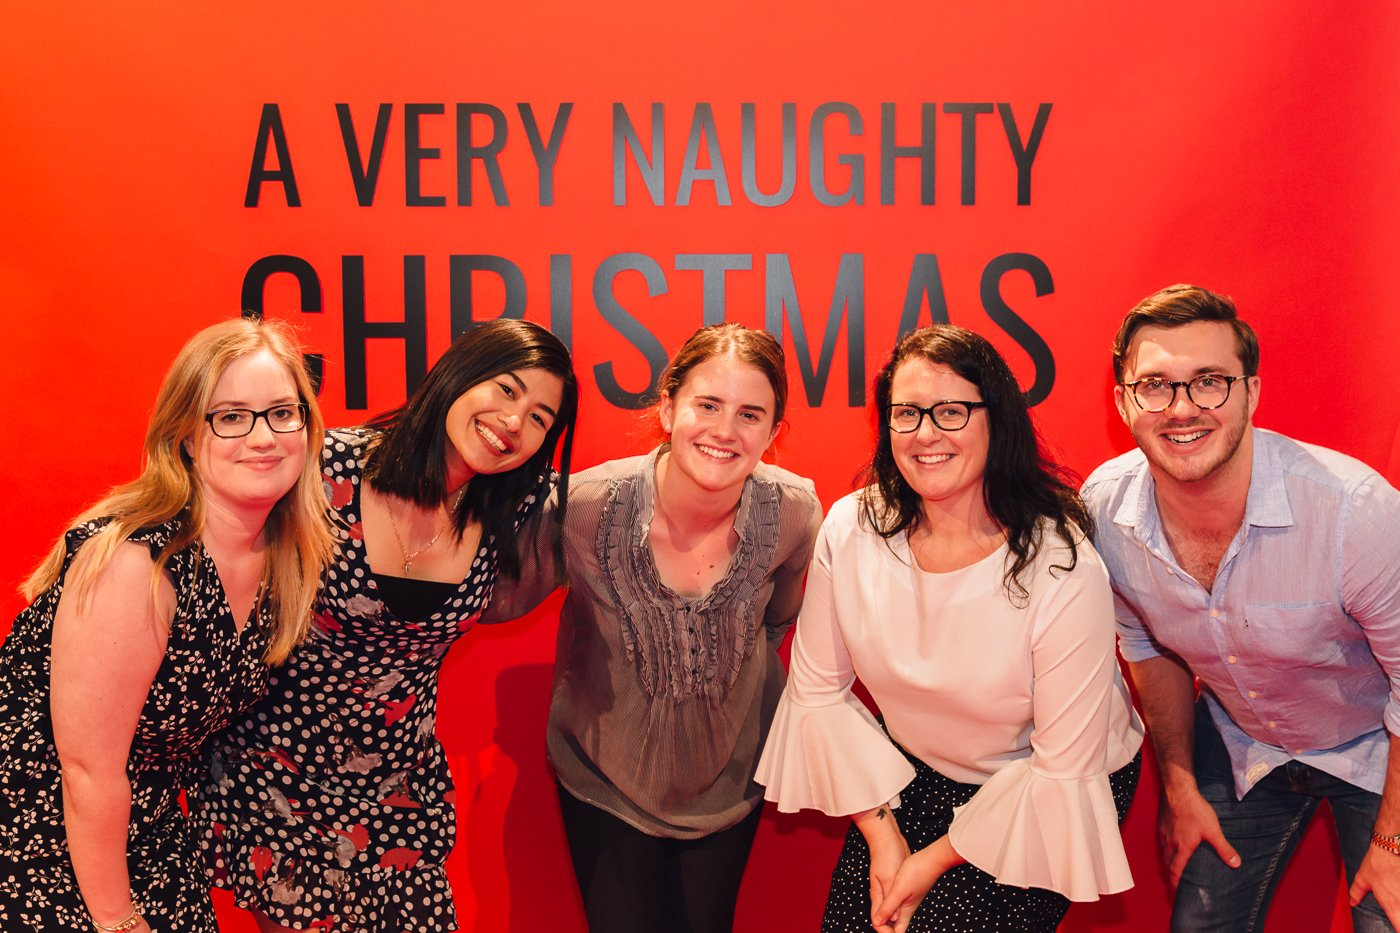 A Very Naughty Christmas